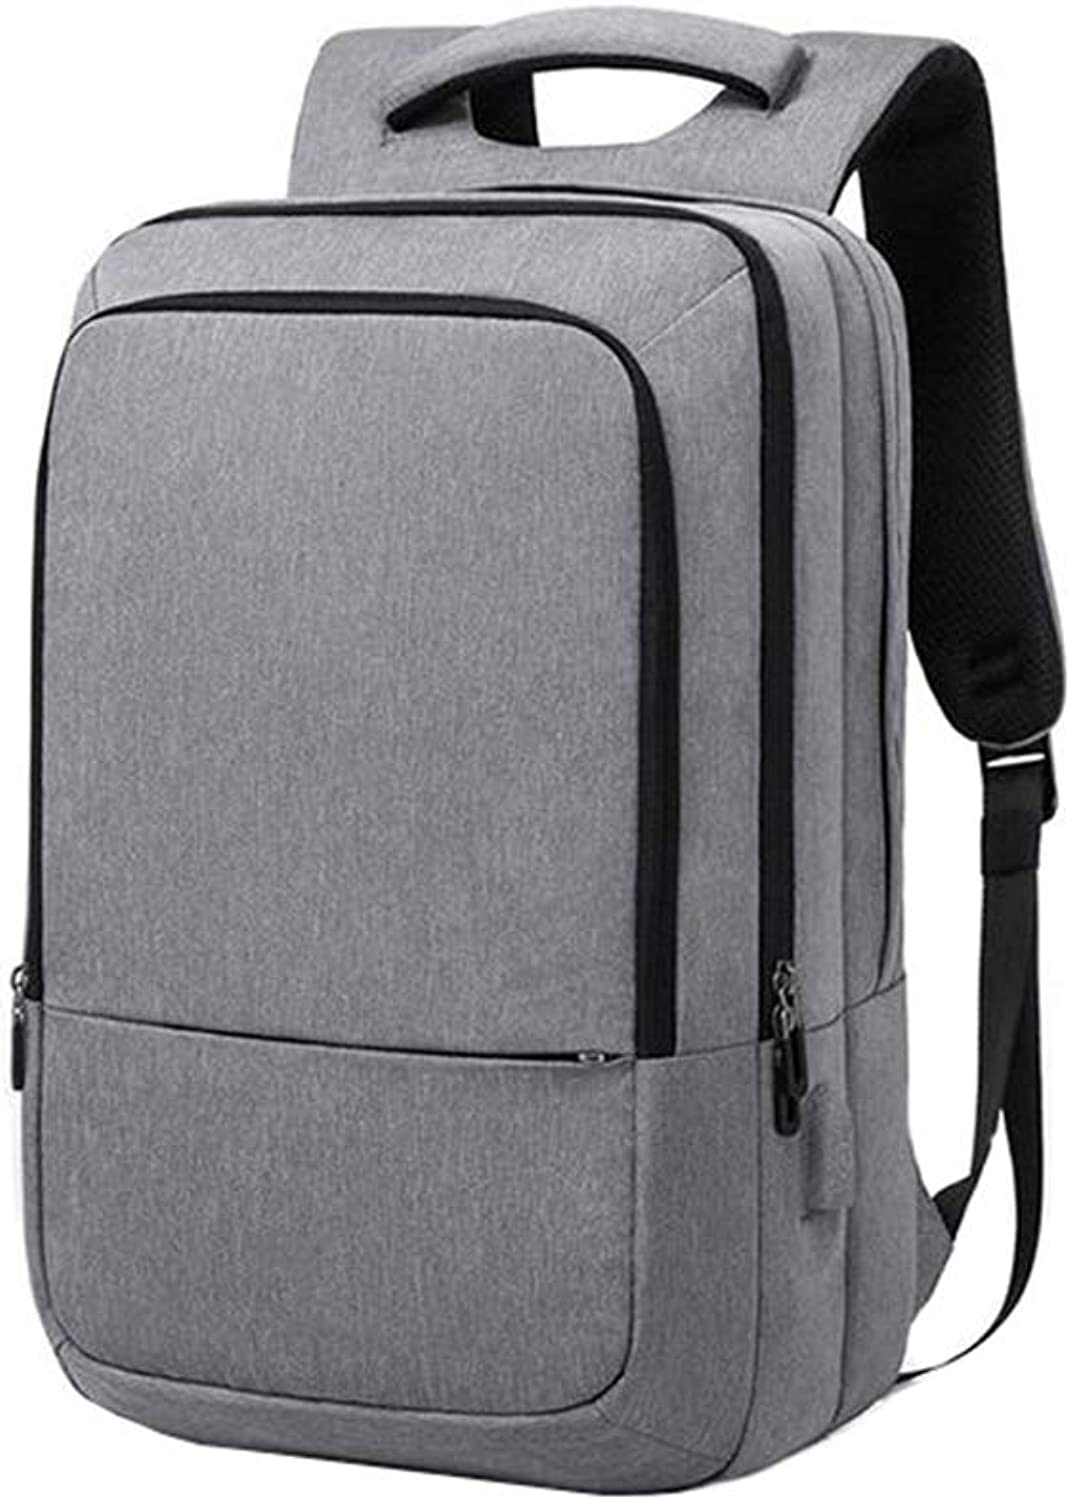 Business Laptop Backpack with USB Charging Port for Laptop and Notebook Water Resistant Large Compartment College School Computer Bag,Bag for Men and Women Pack for Business School and Travel